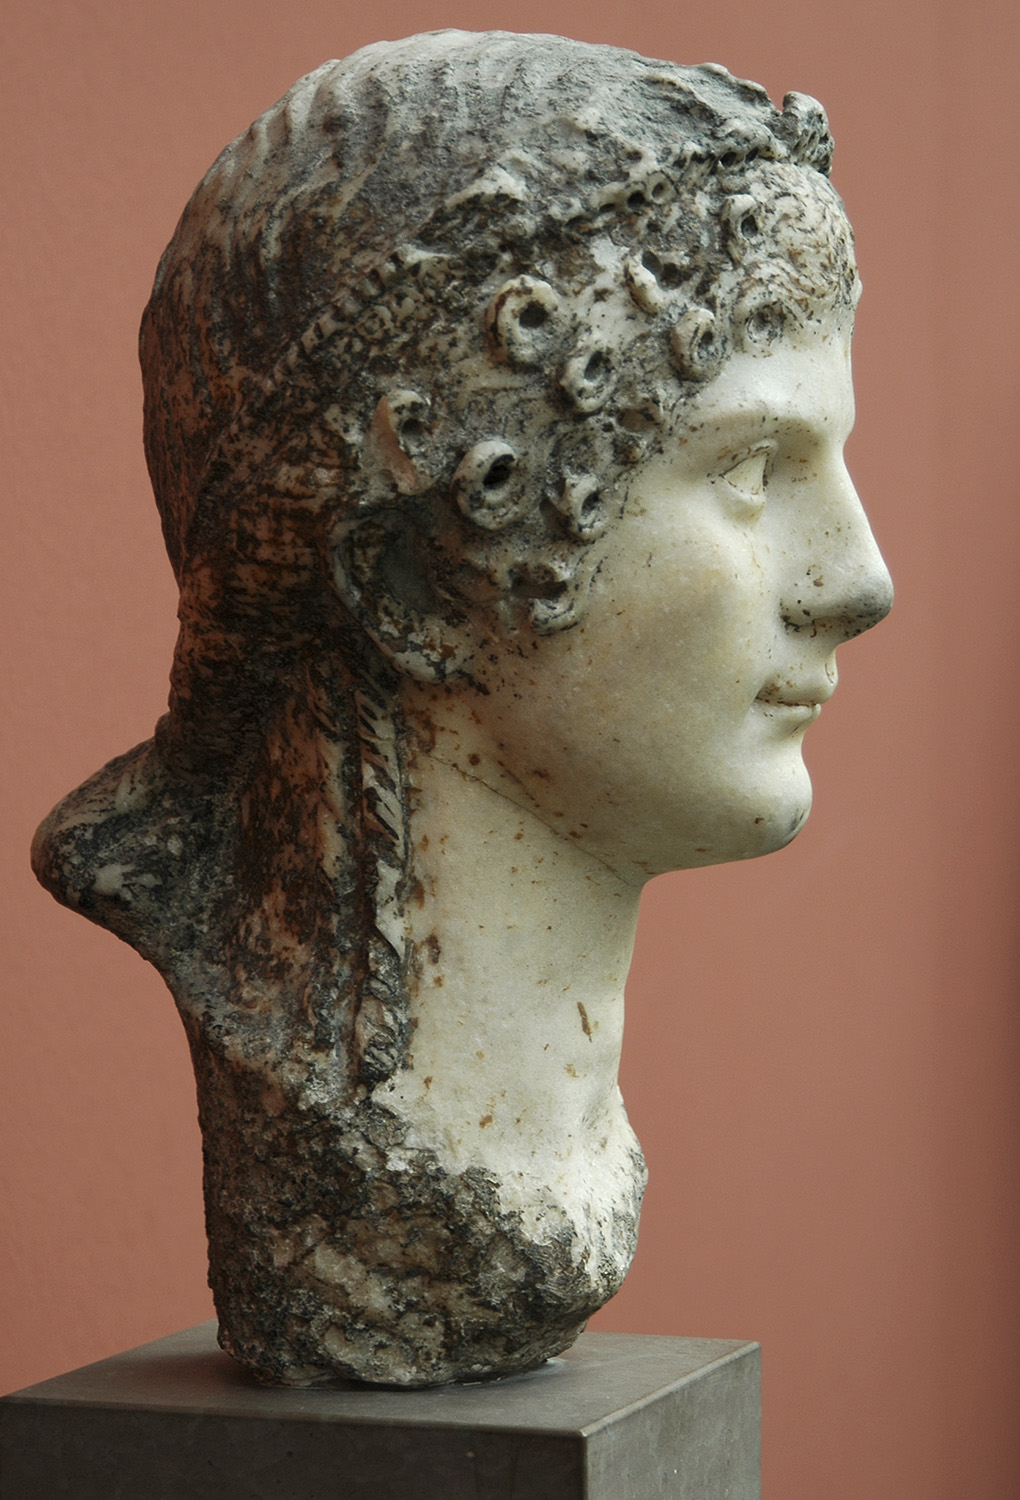 Agrippina Minor. Marble. 41—54 CE. Height 36 cm. Inv. No. 755. Copenhagen, New Carlsberg Glyptotek